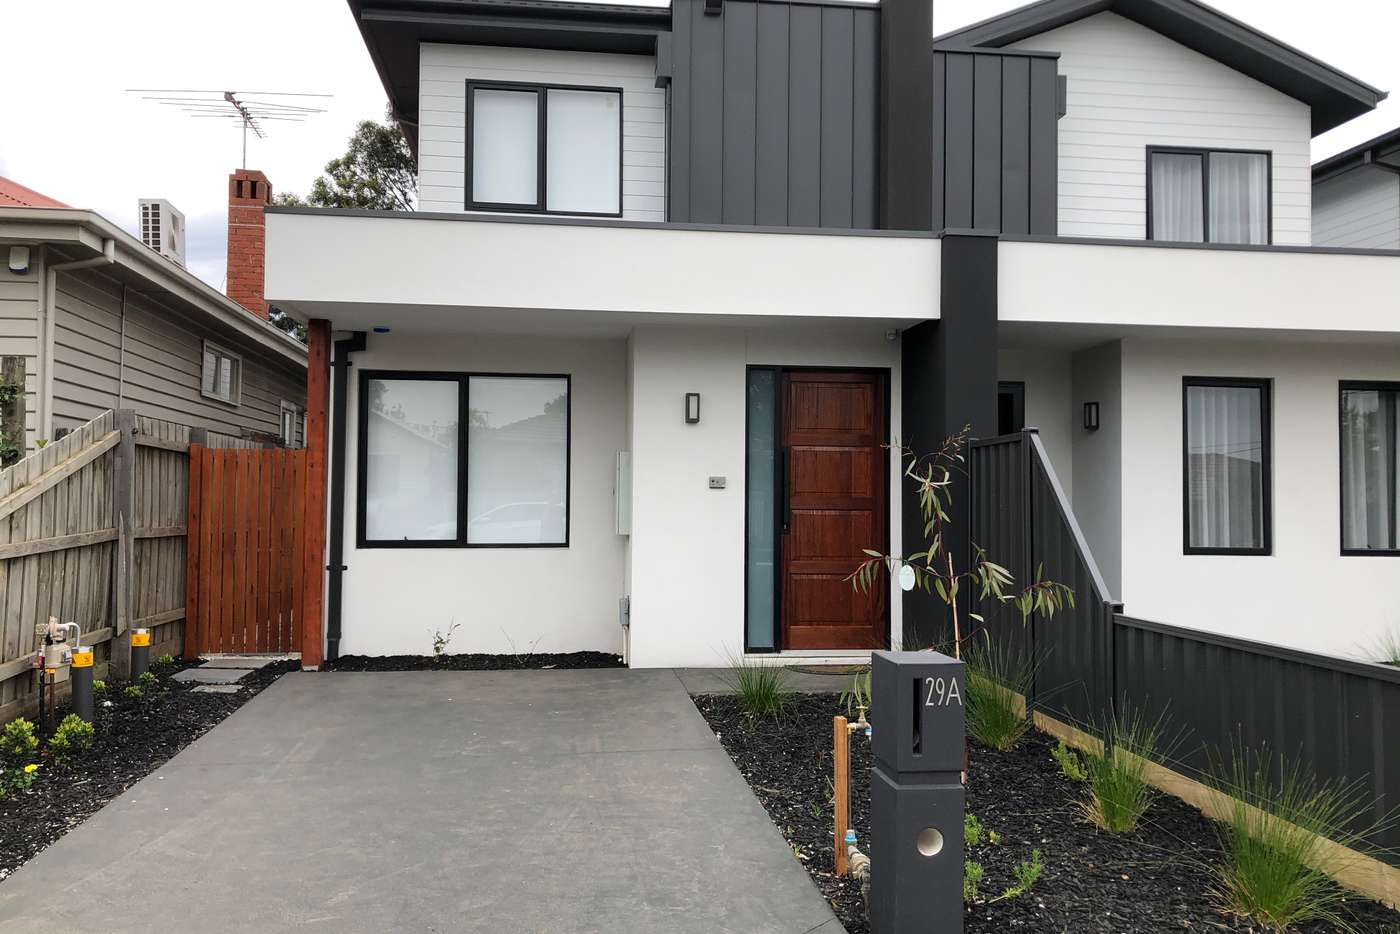 Main view of Homely townhouse listing, 29A Bena Street, Yarraville VIC 3013